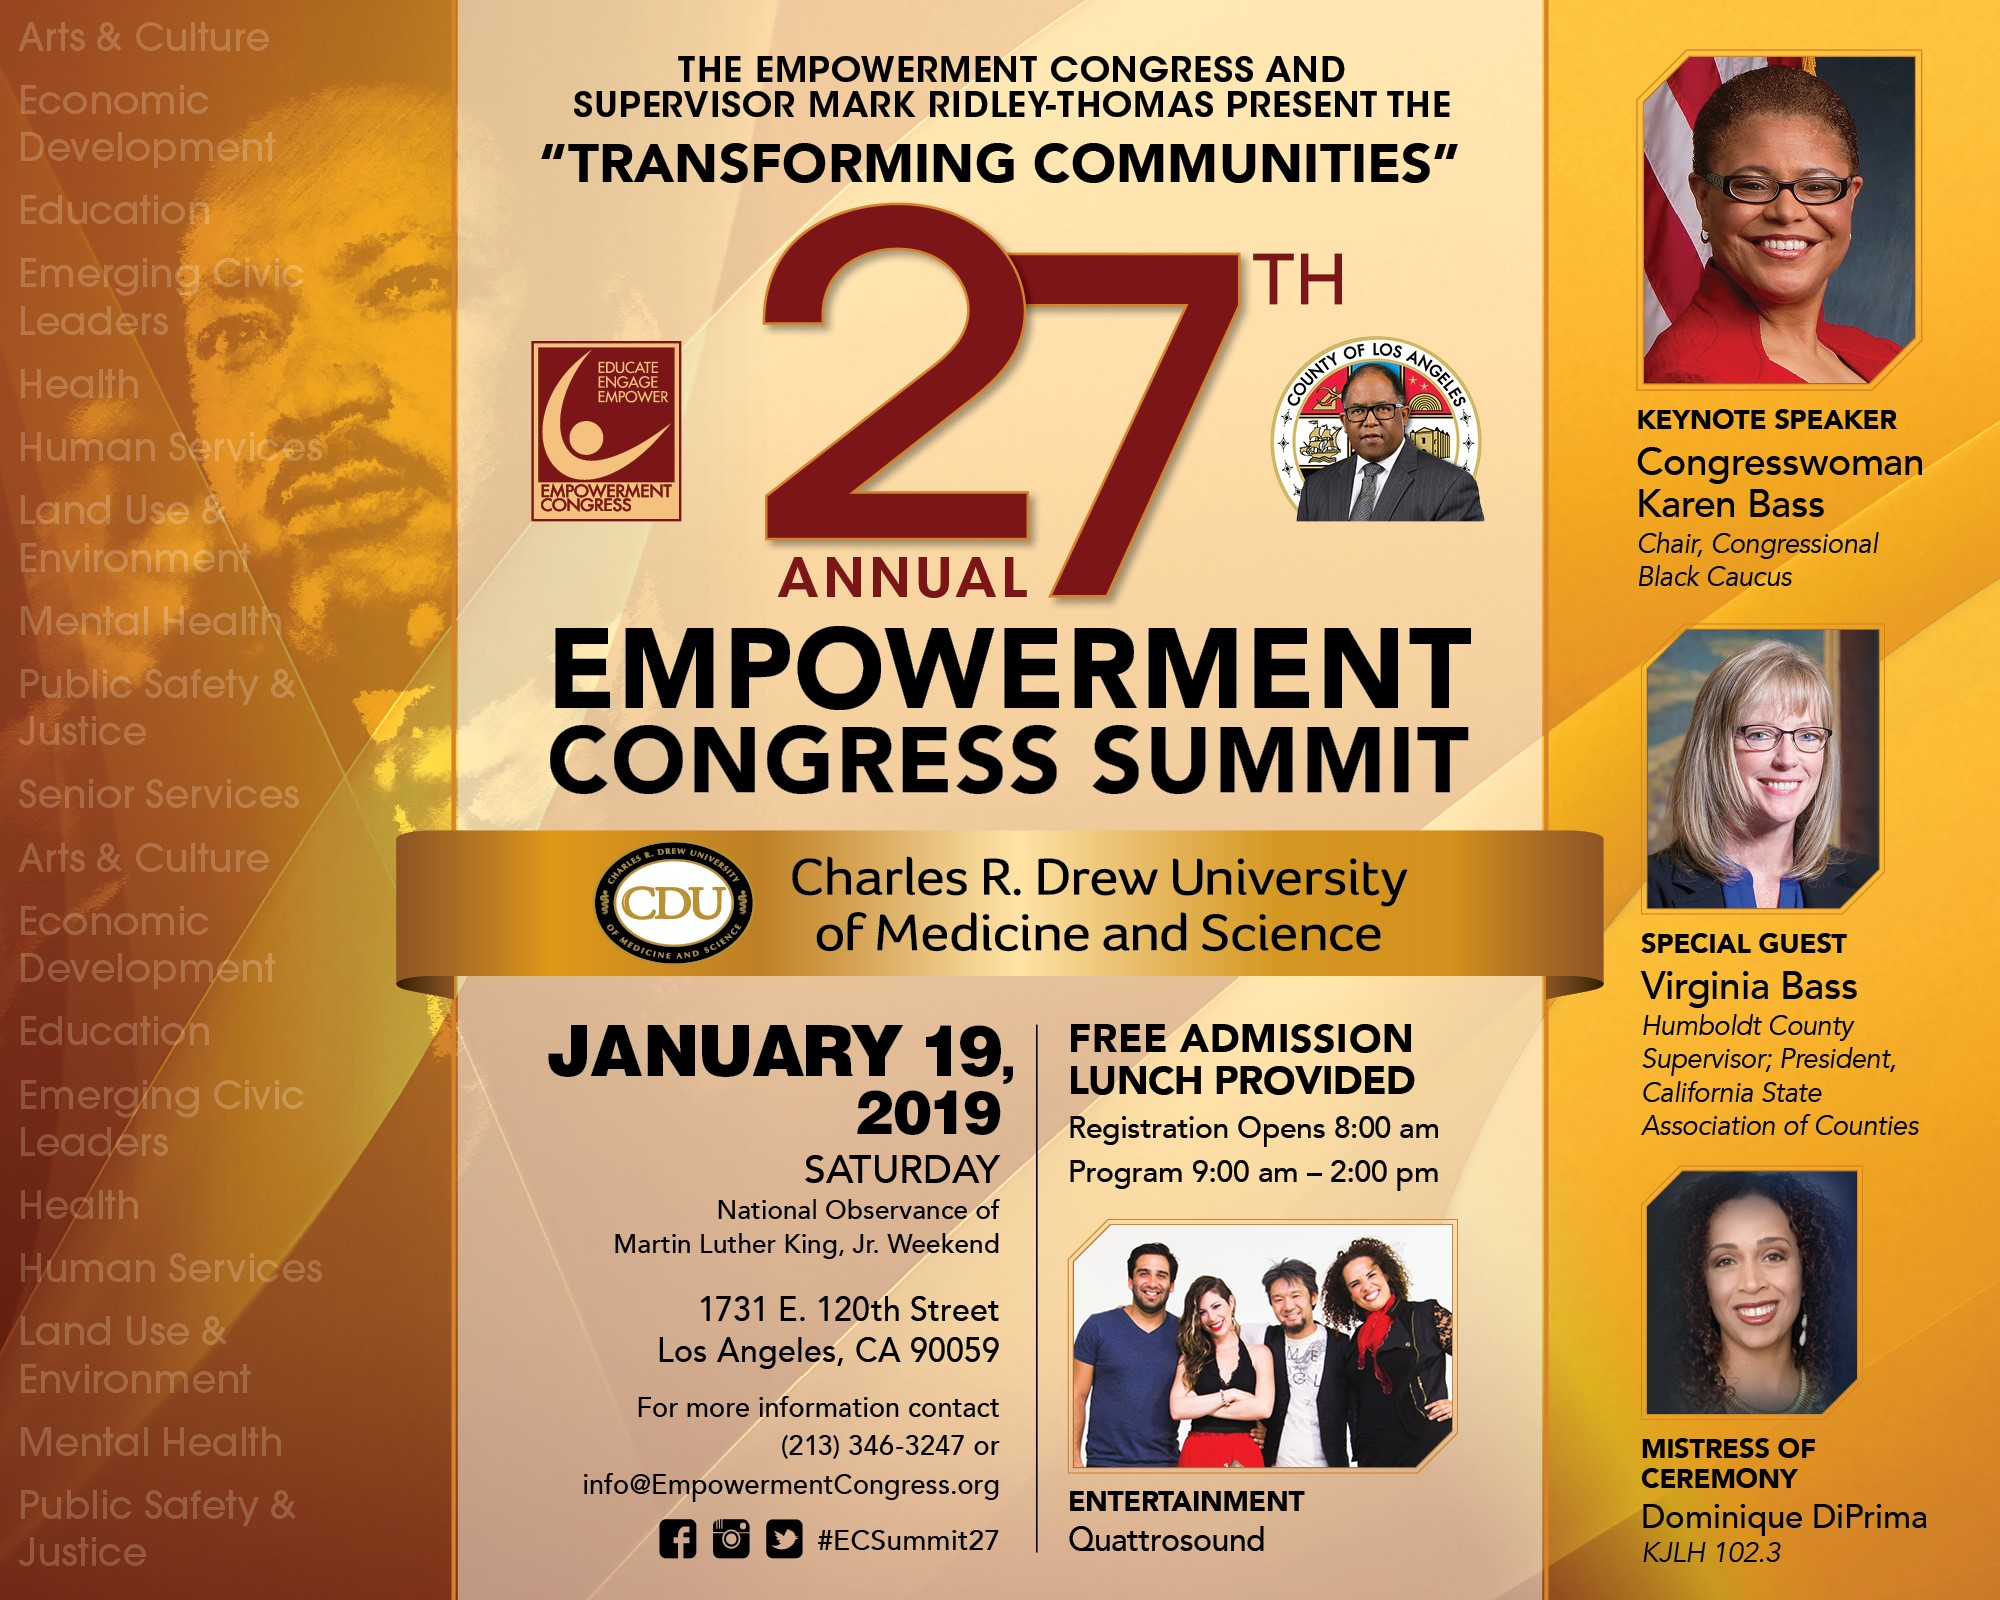 27th Annual Empowerment Congress Summit